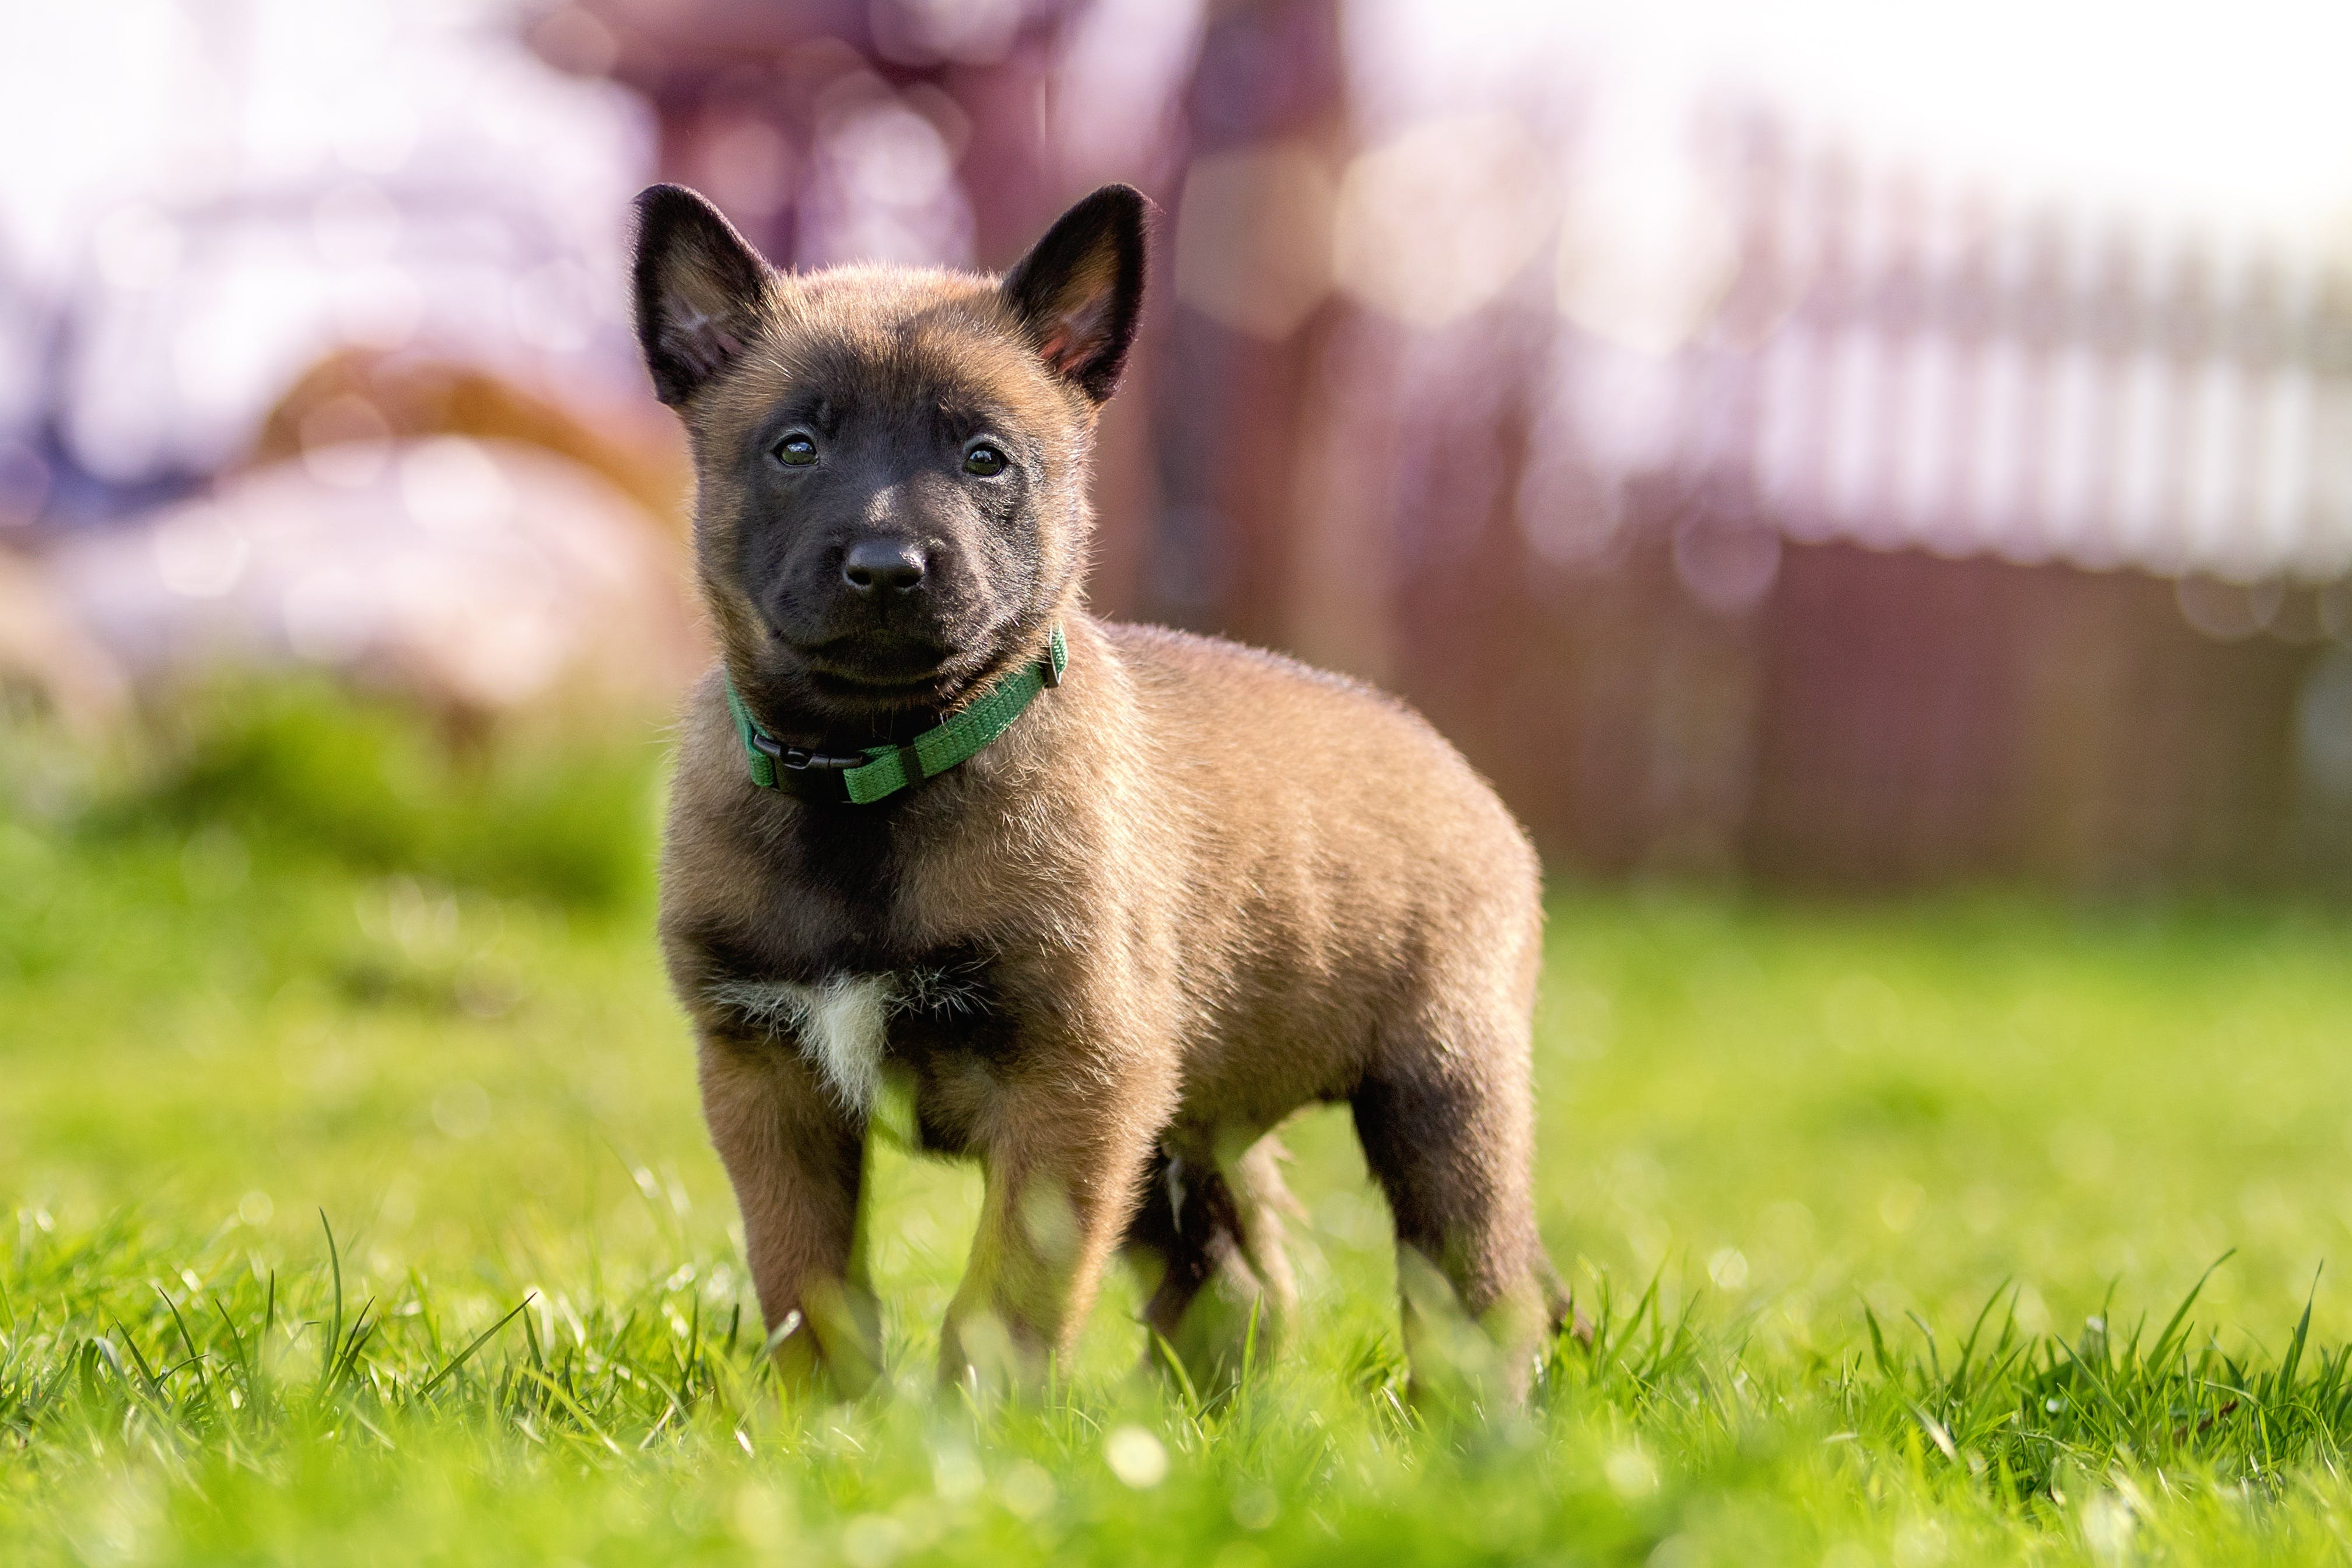 Fawn and Black Belgian Malinois Puppy on Green Grass